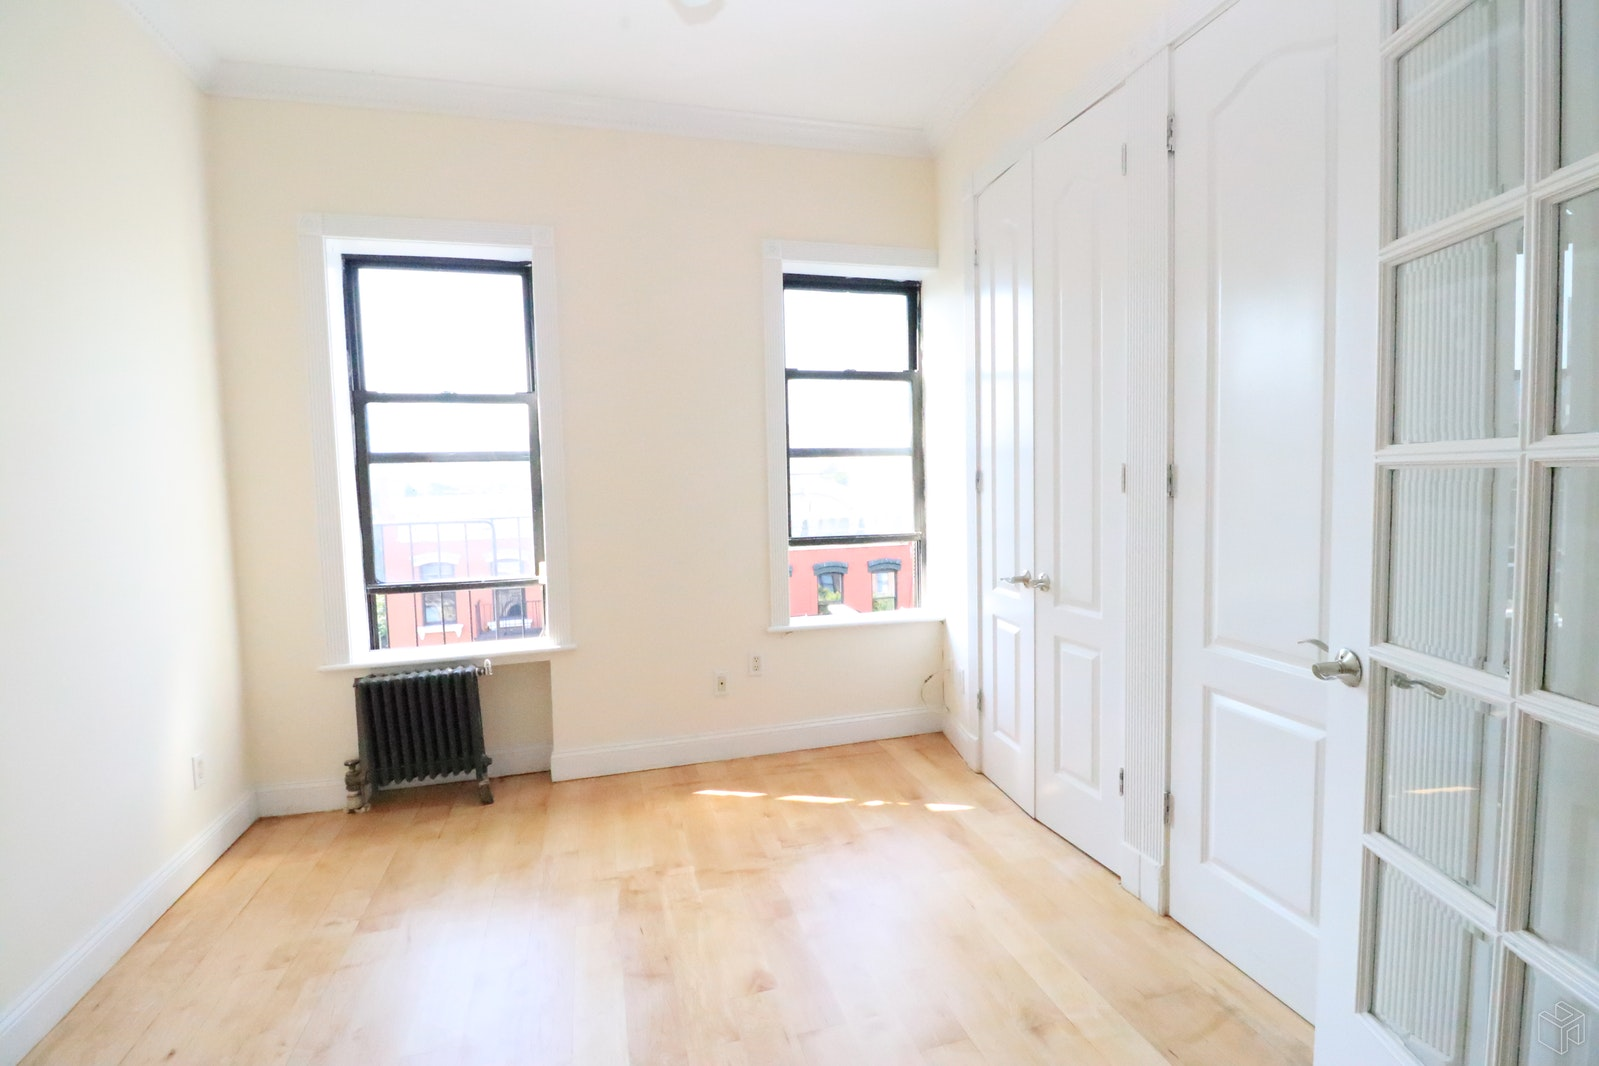 73 East 3rd Street D1, East Village, NYC, 10003, Price Not Disclosed, Rented Property, Halstead Real Estate, Photo 1